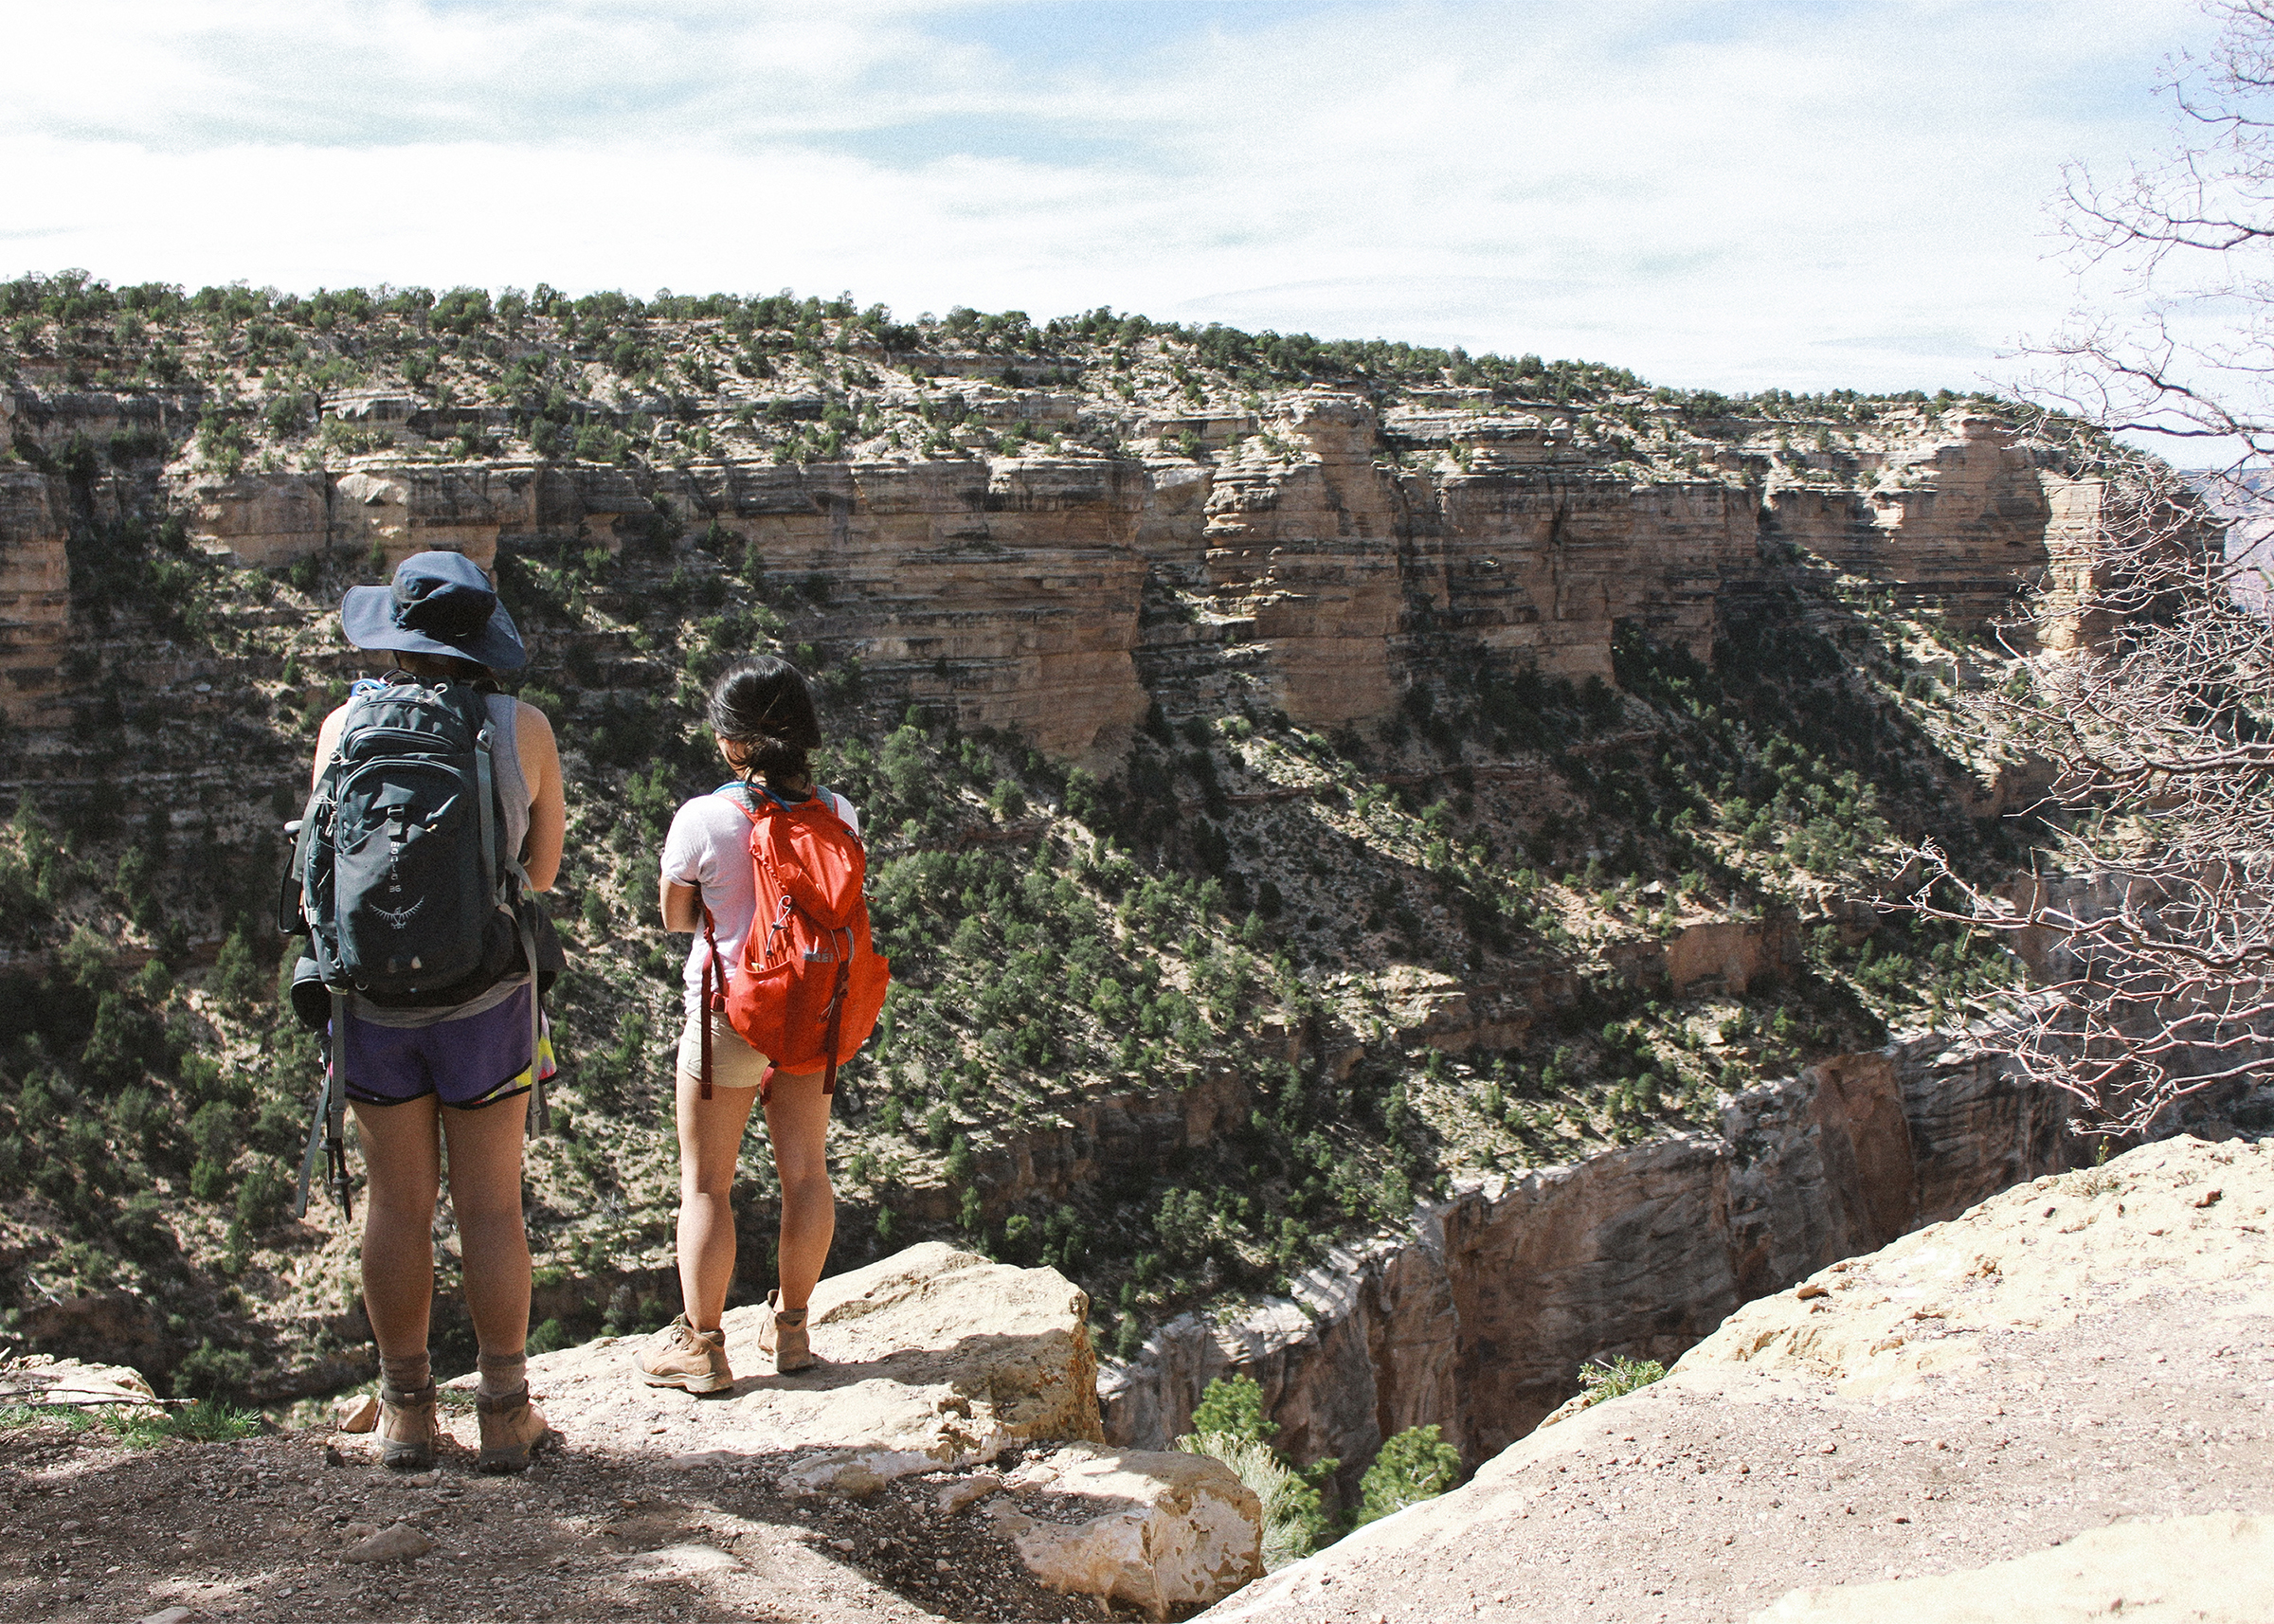 Vivian and Jennifer standing at the trailhead of the Bright Angel Trail